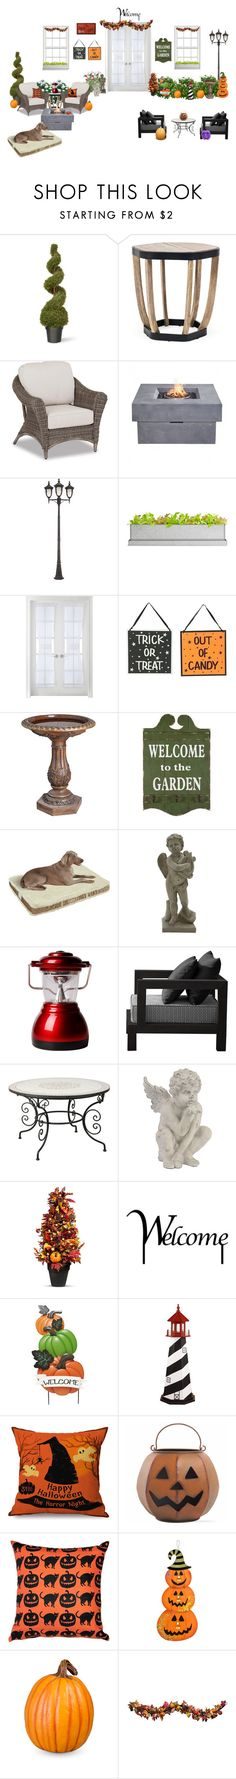 """Halloween night outdoor house"" by kaleighb28 on Polyvore featuring interior, interiors, interior design, home, home decor, interior decorating, National Tree Company, Ethimo, Thos. Baker and Zuo"